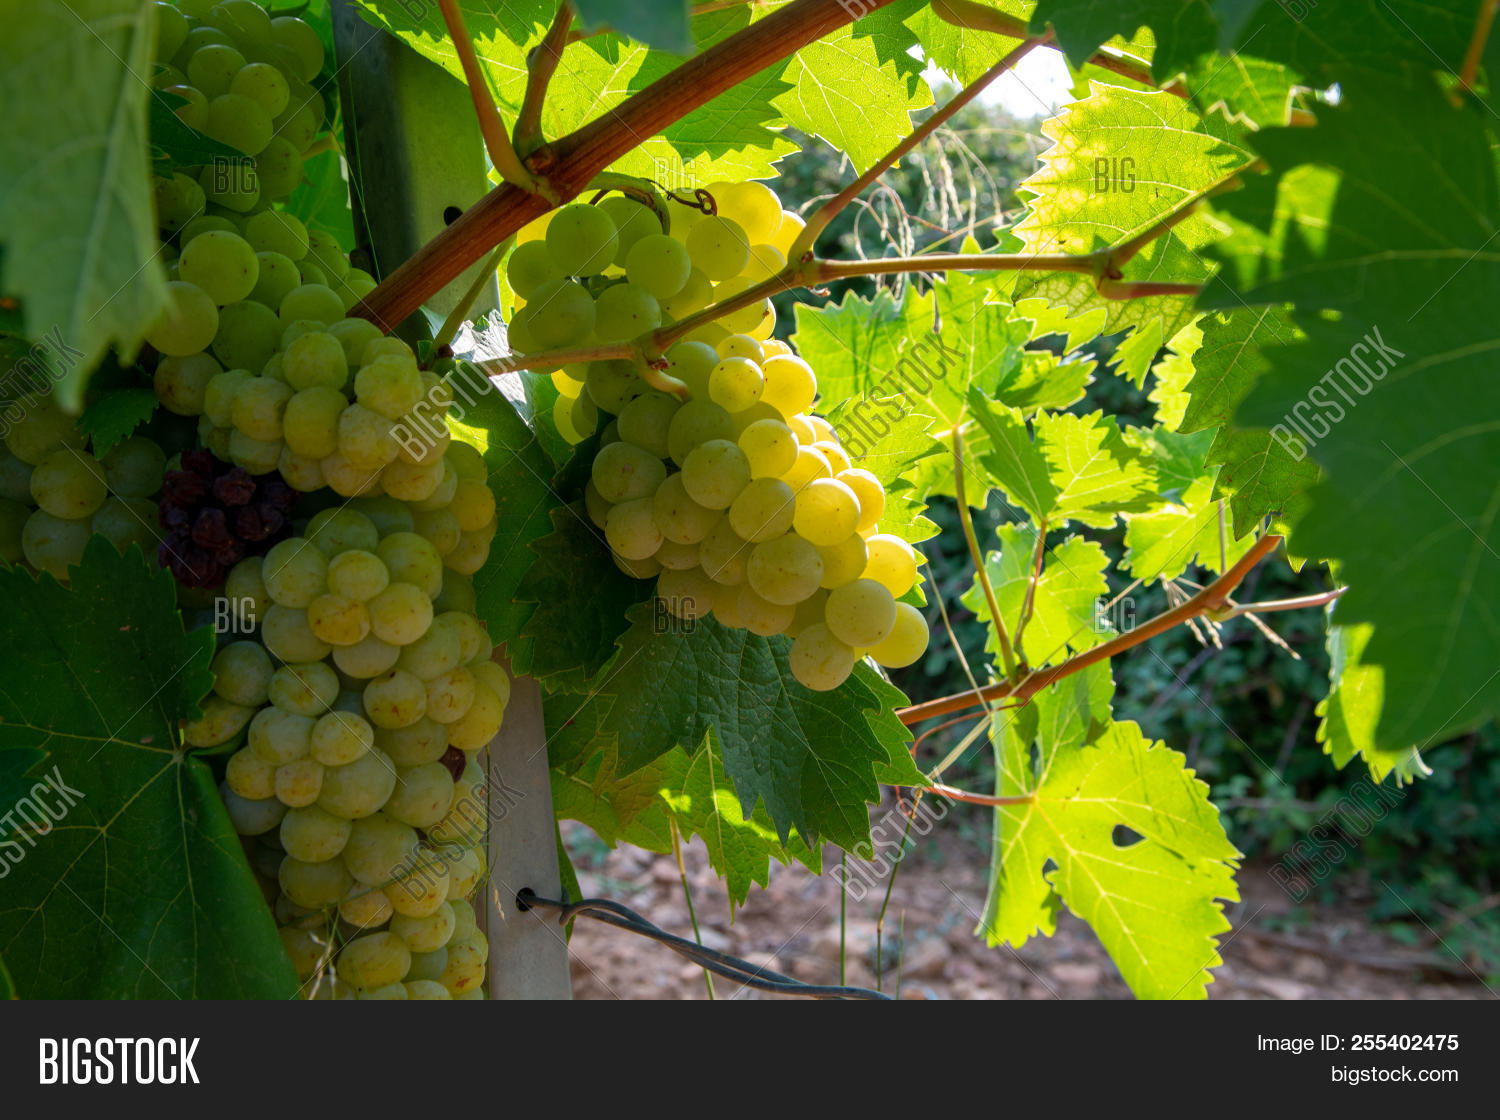 Ripe White Wine Grapes Image & Photo (Free Trial) | Bigstock